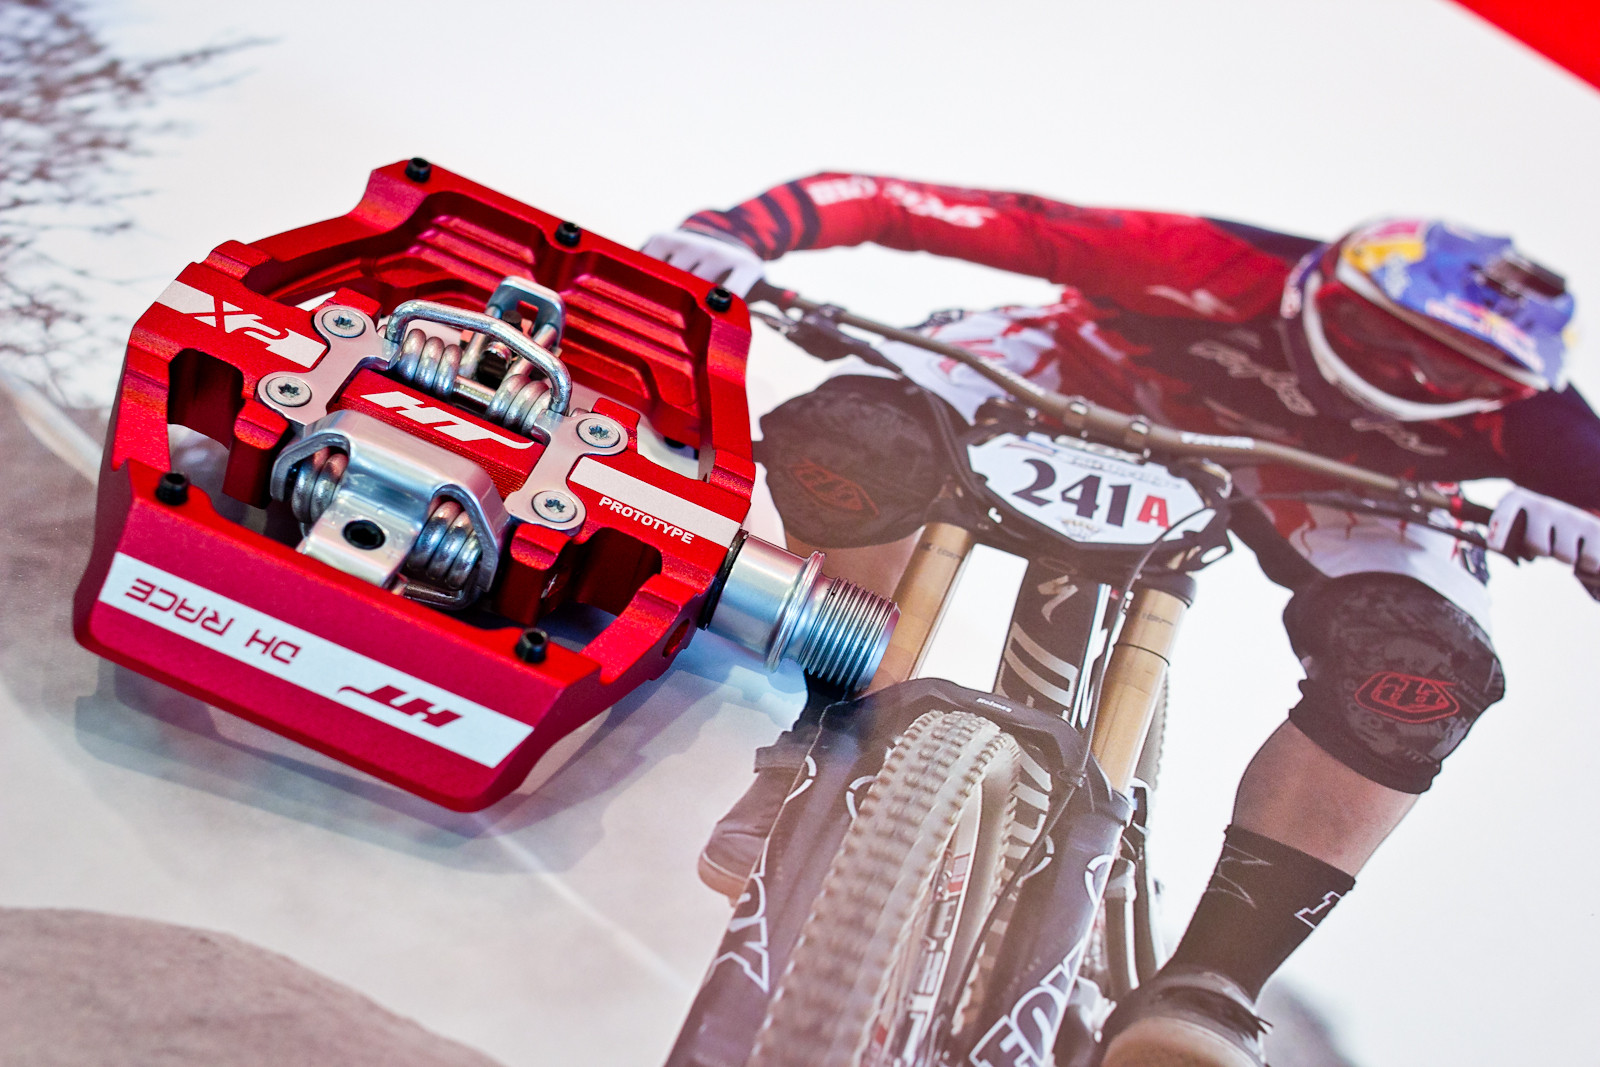 HT X1 and X2 Clipless Pedals - 2015 Mountain Bike Components at Eurobike 2014 - Mountain Biking Pictures - Vital MTB